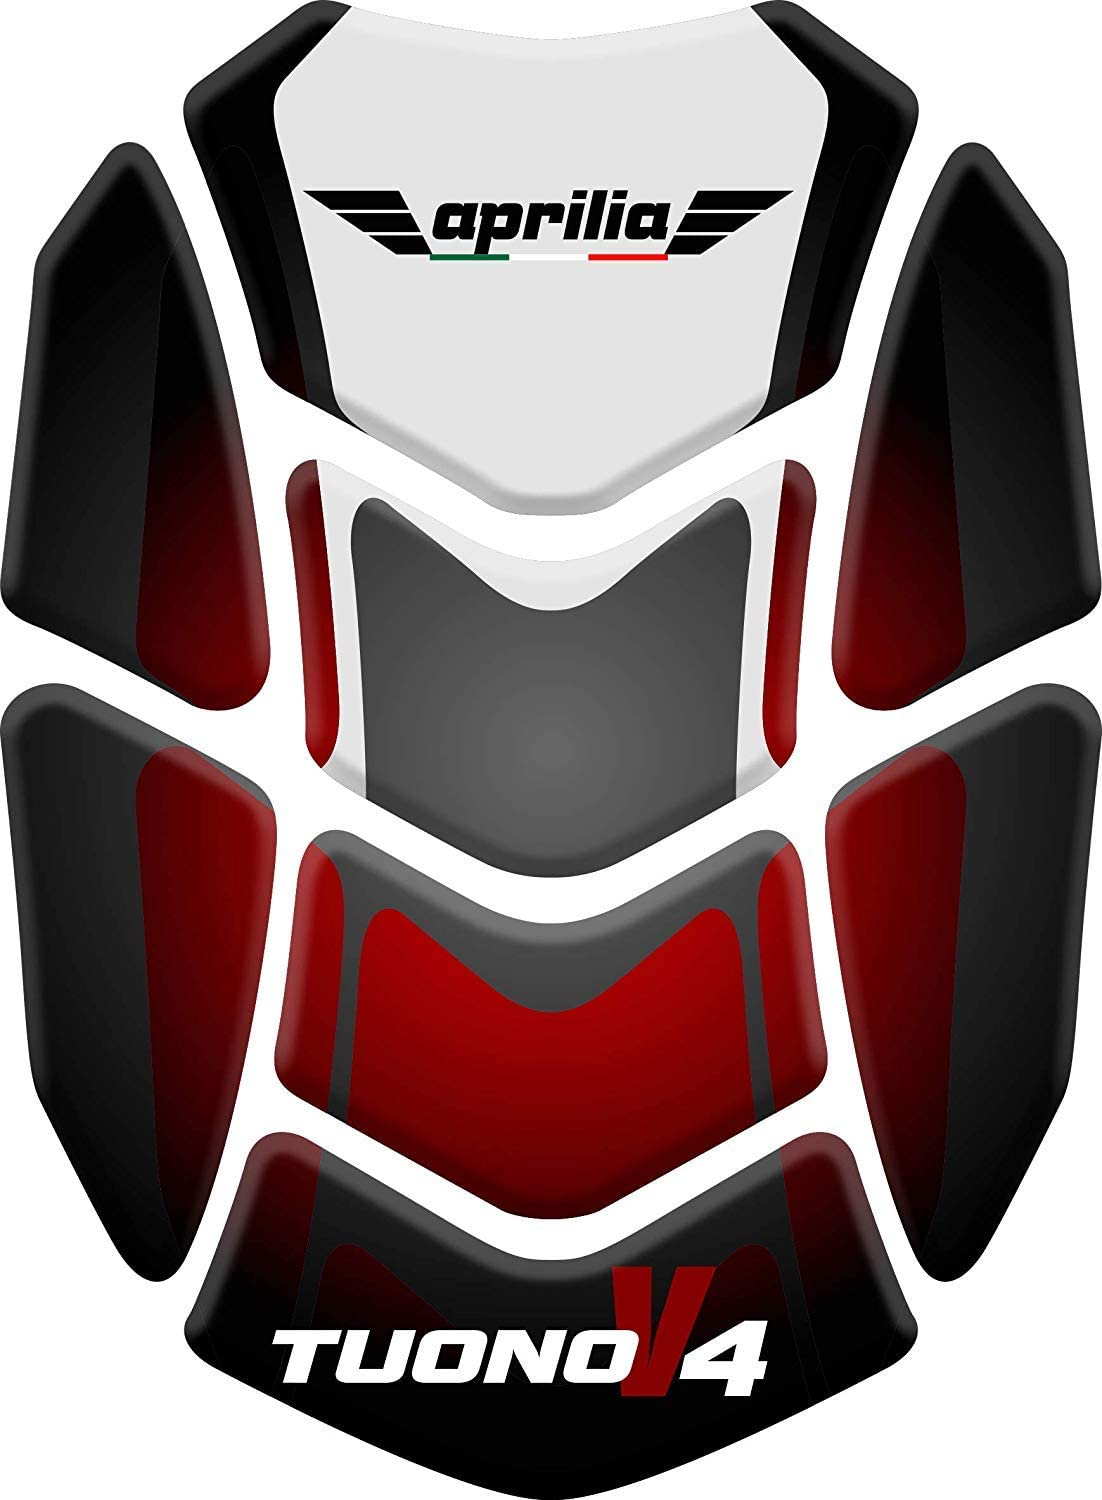 Stickers for fuel tank tankpad 3D effect resin adhesive sticker compatible with Aprilia Tuono v4 Red